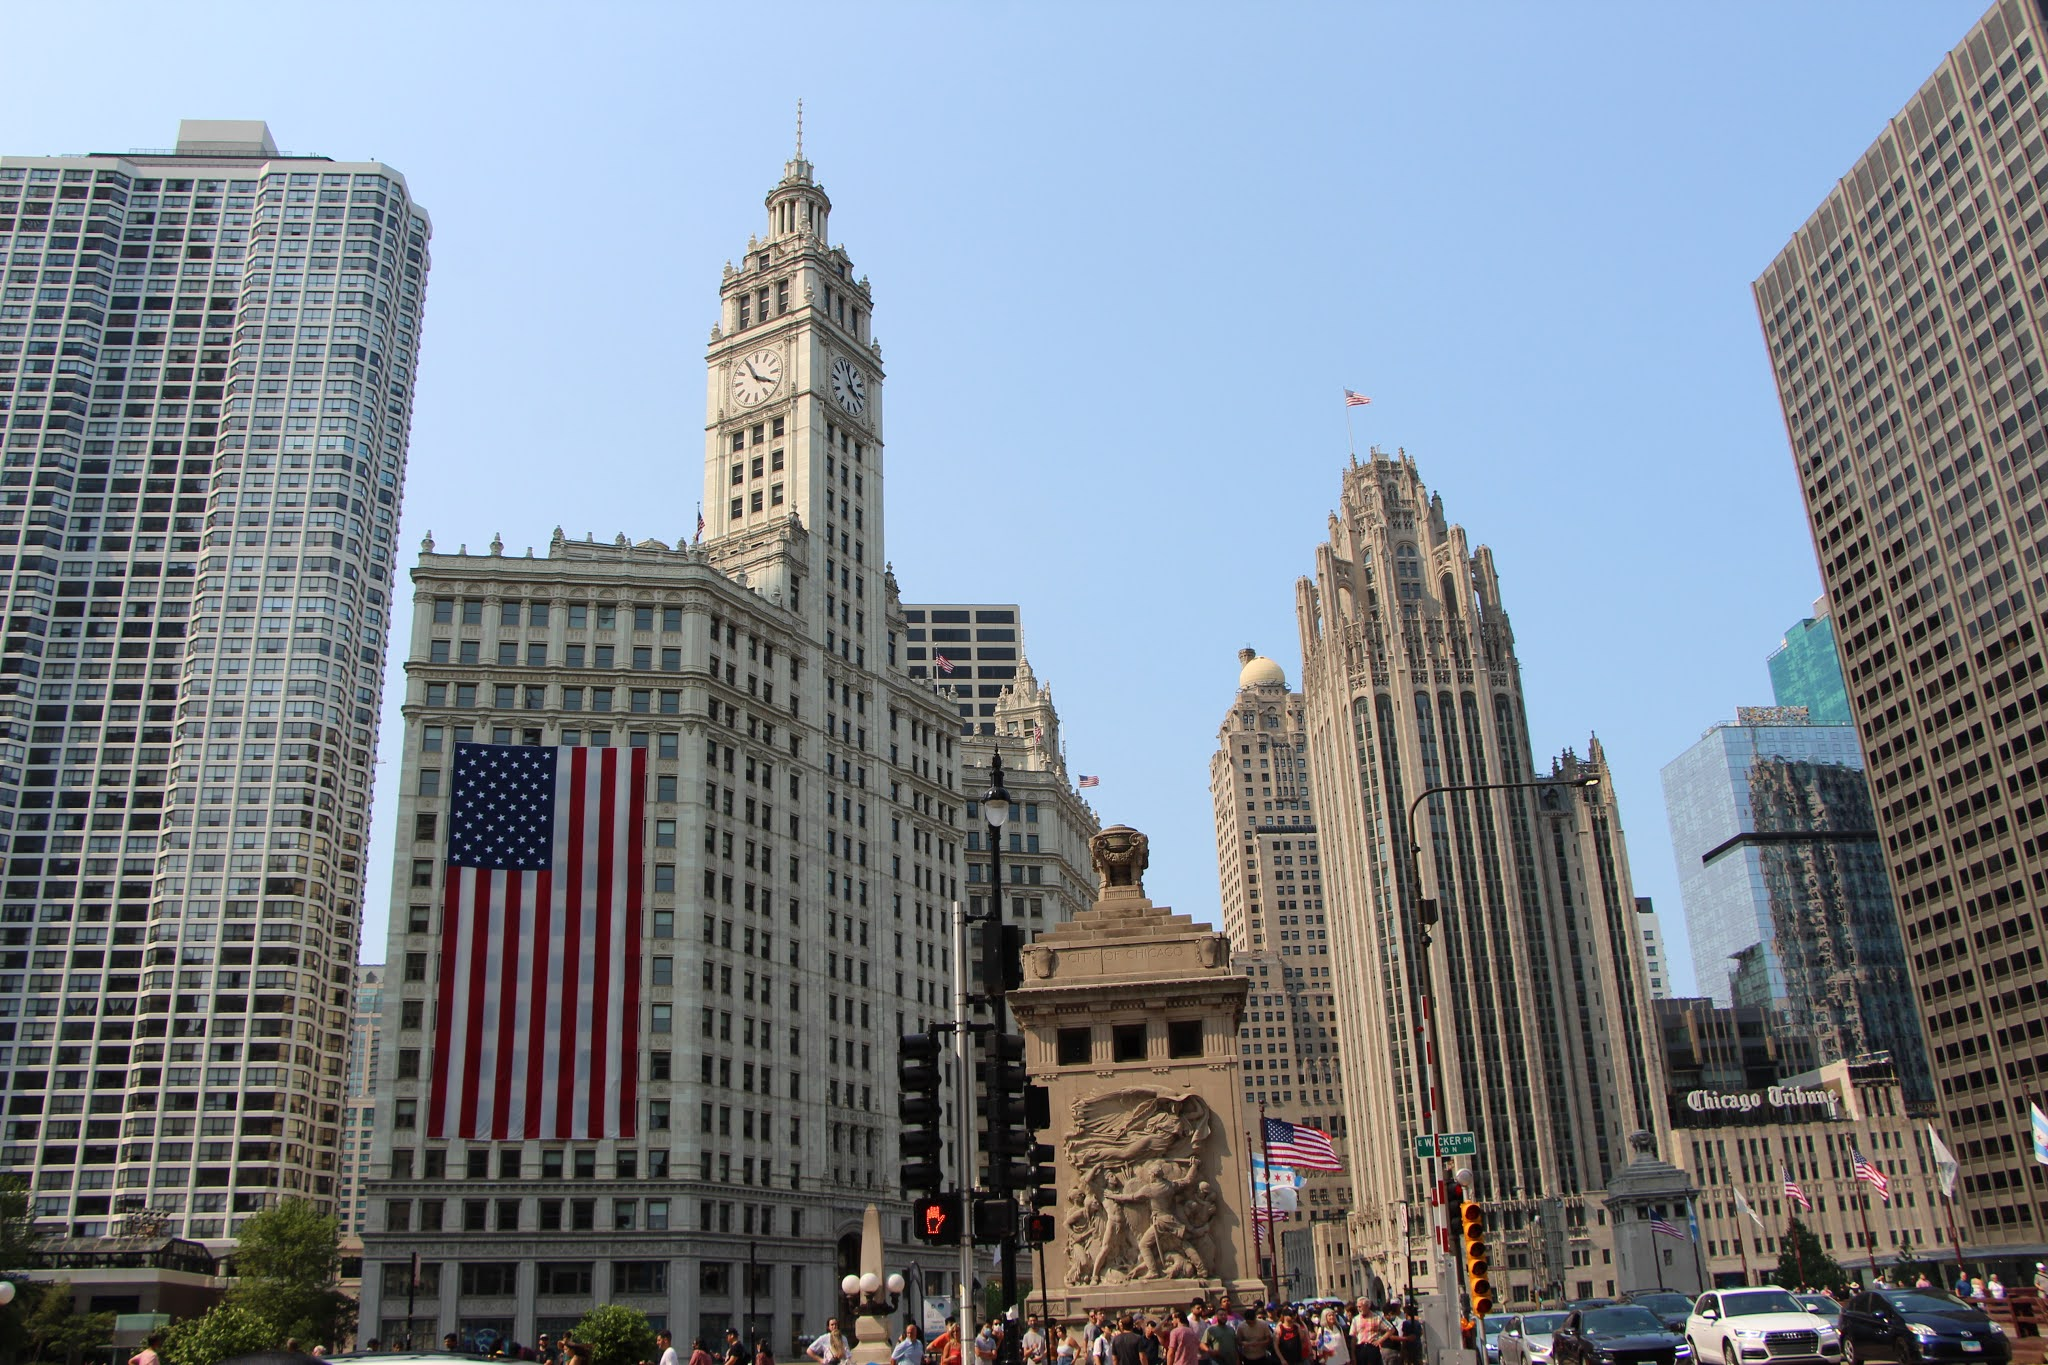 chicago, illinois, the loop, travel guide, architecture tour